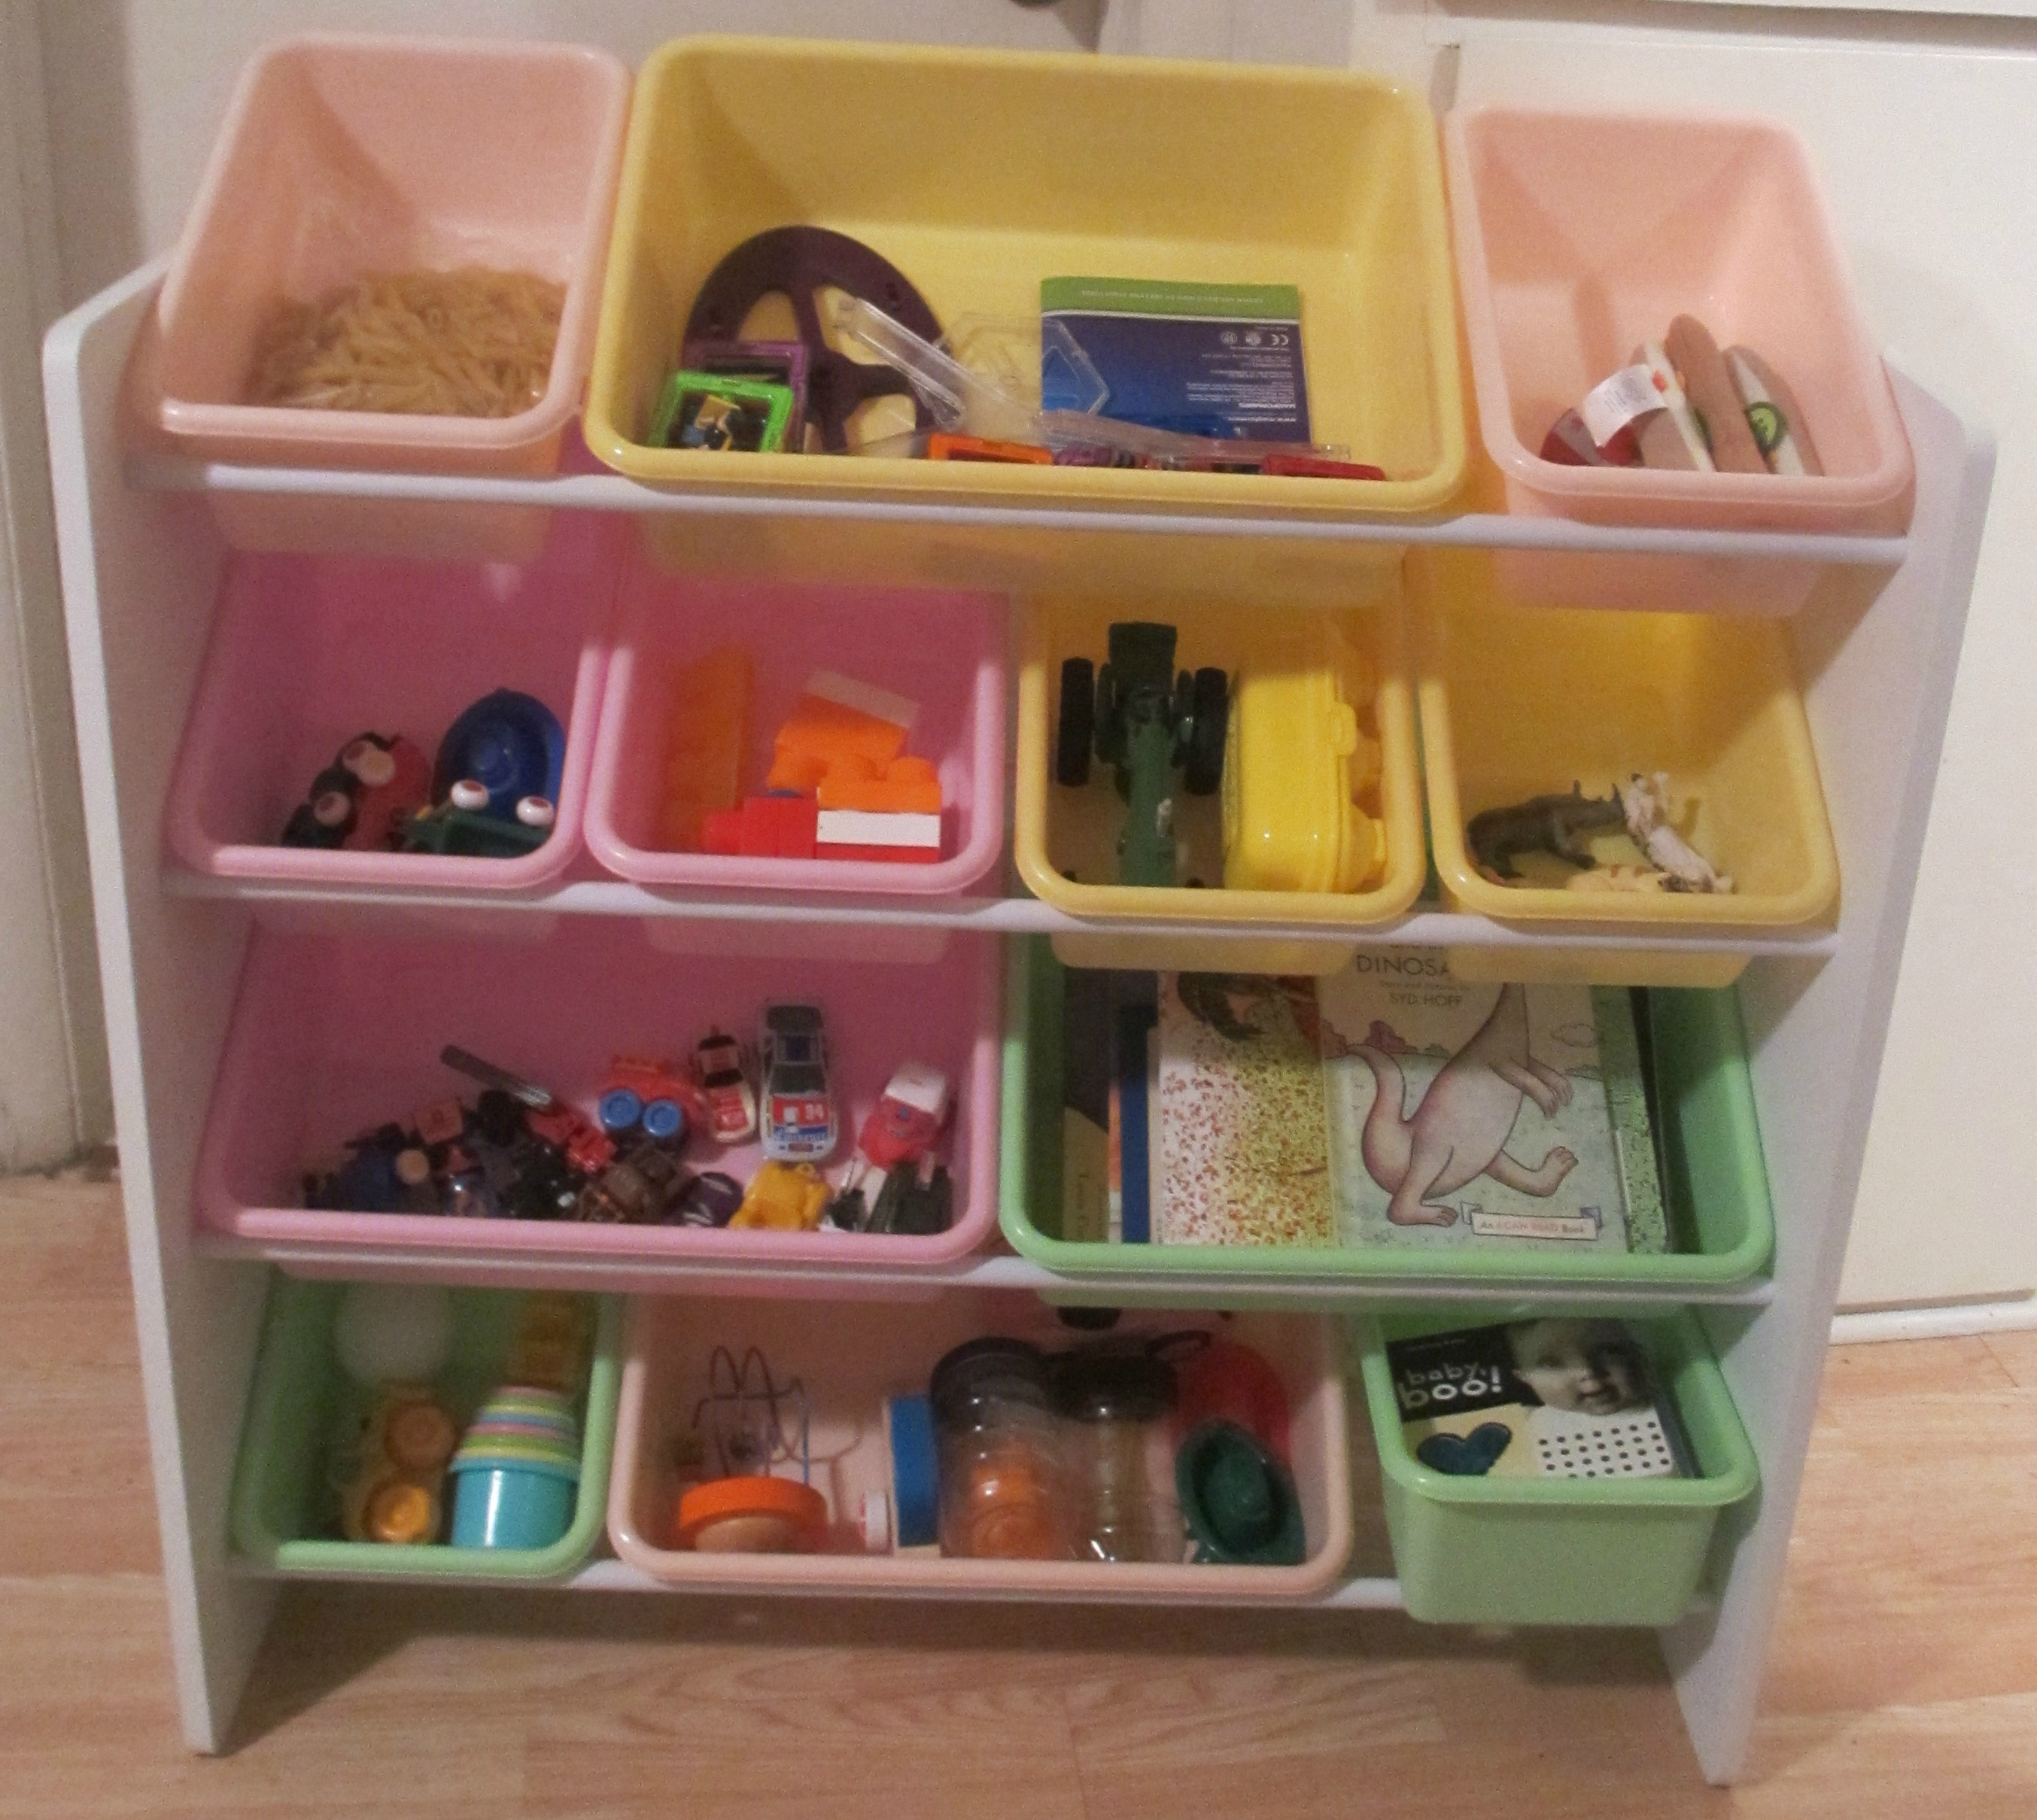 Good Whitmortilt Whitmor Toy Organizer Review